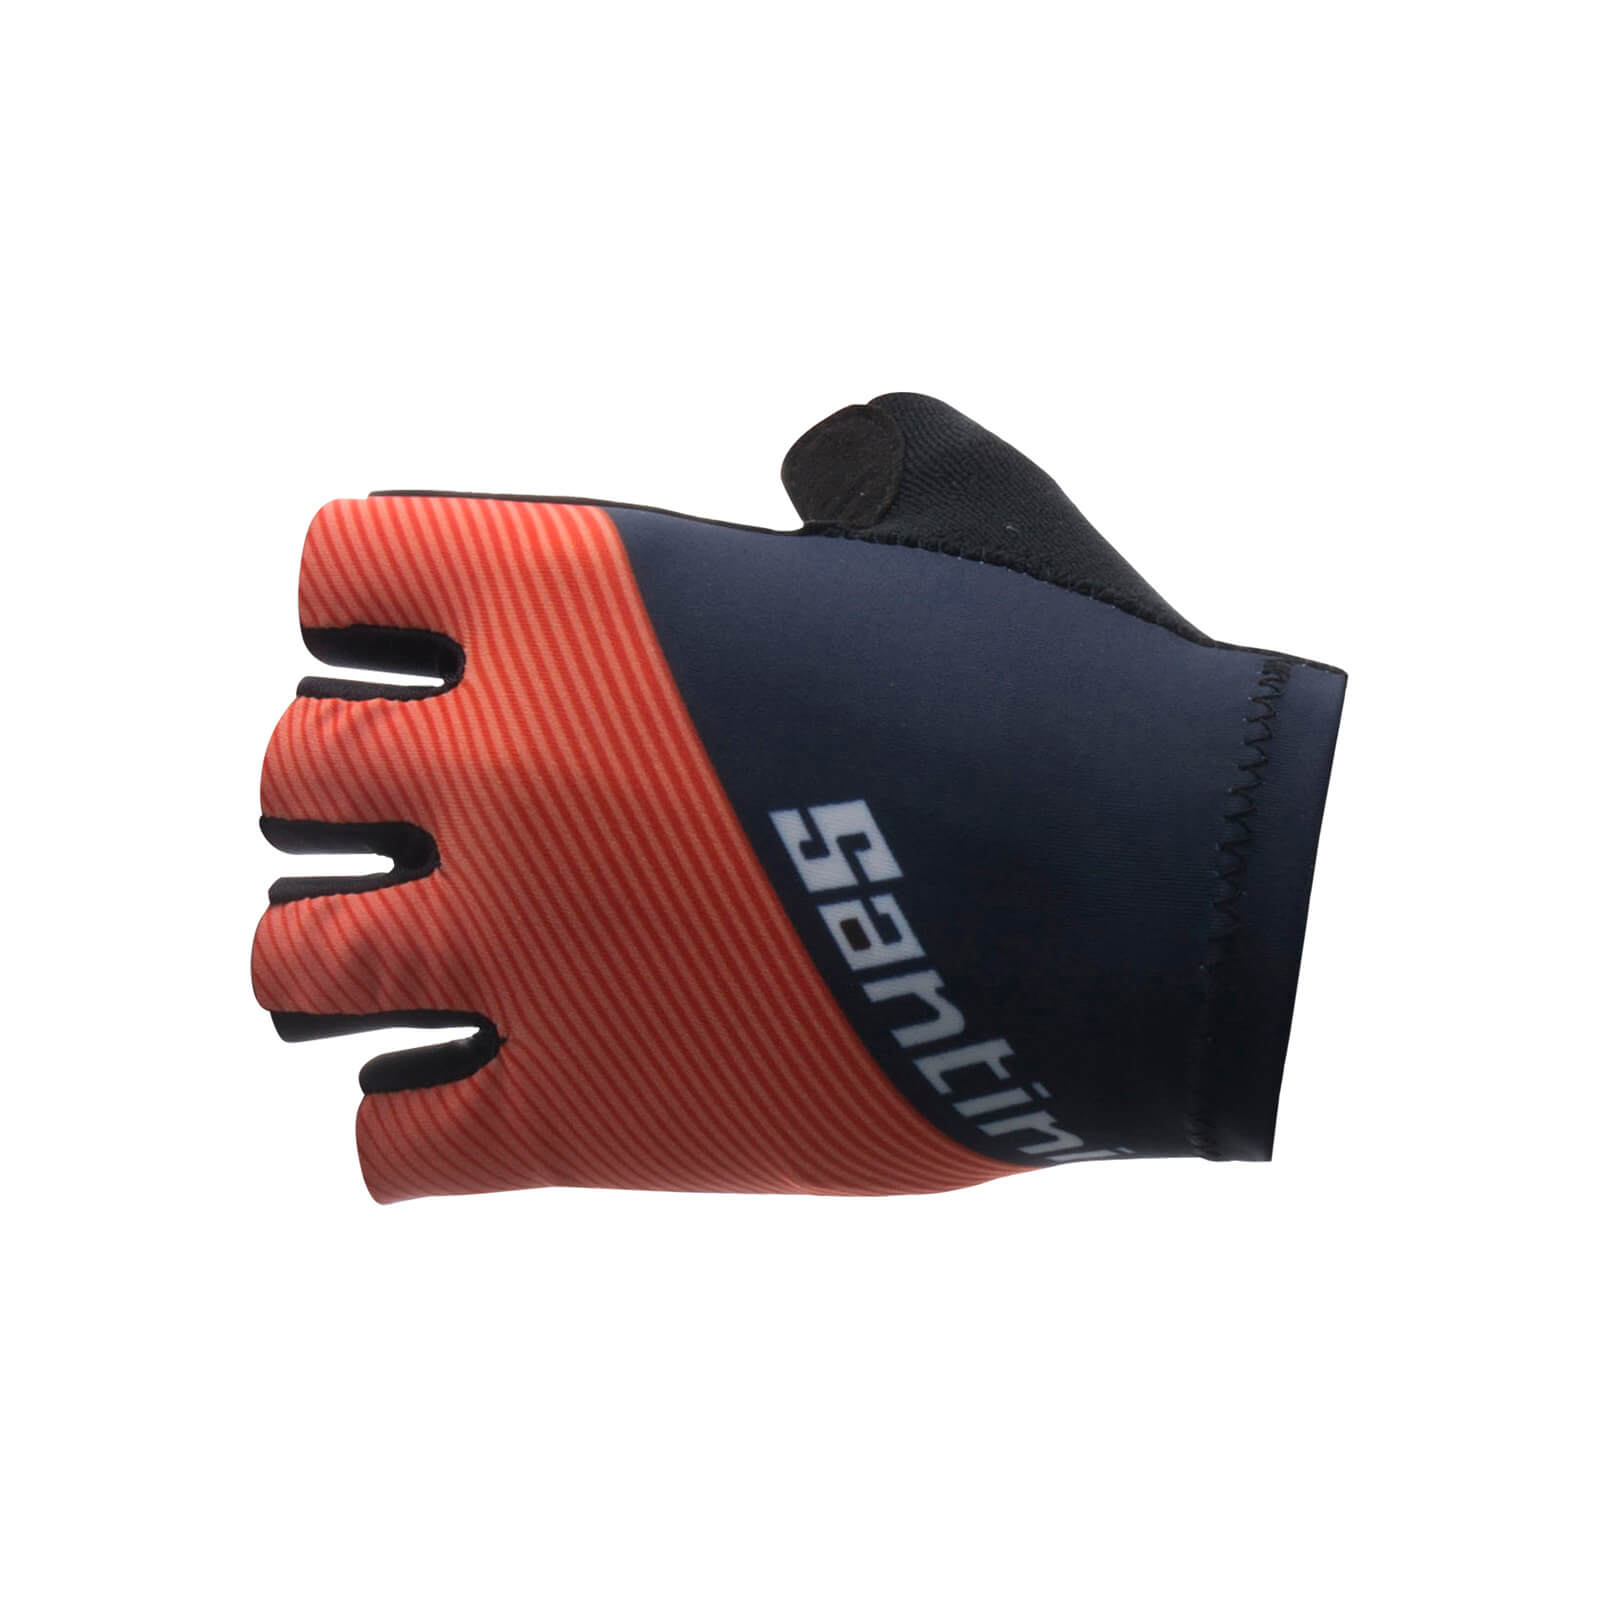 Santini Giada Race Gloves - Orange